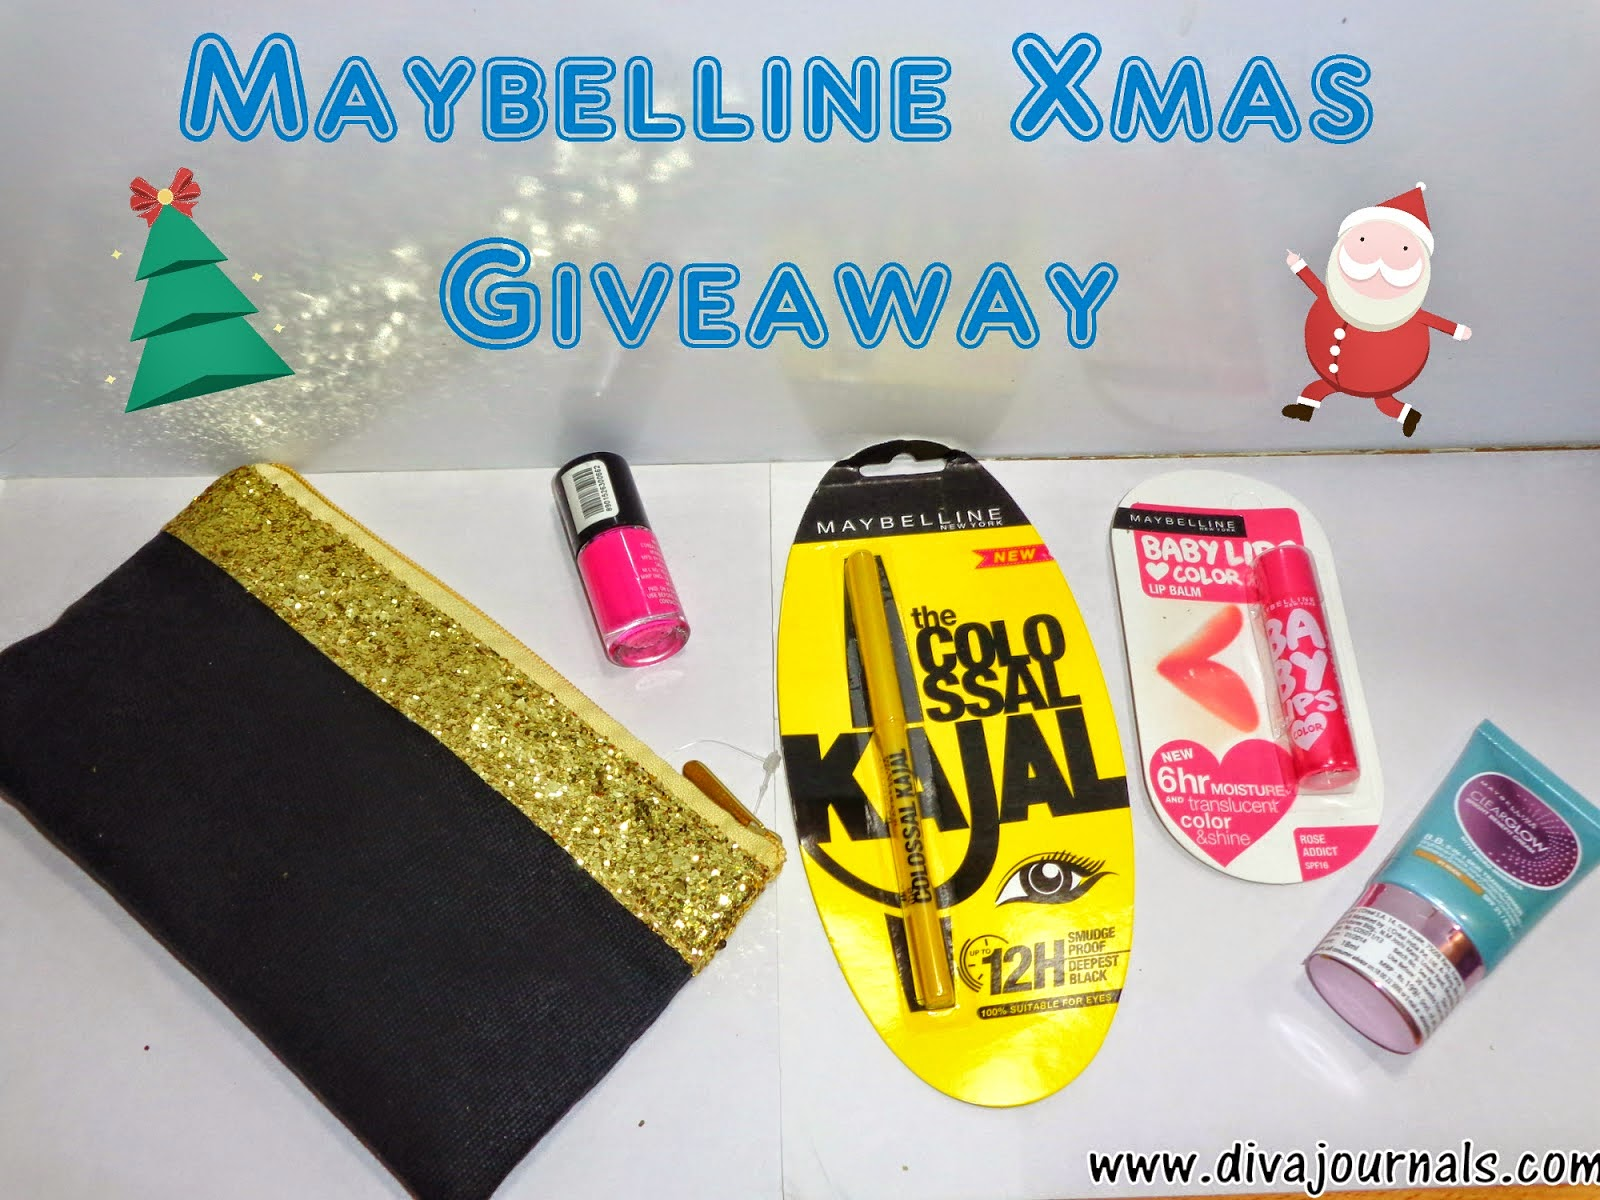 http://www.divajournals.com/2014/12/maybelline-xmas-giveaway.html